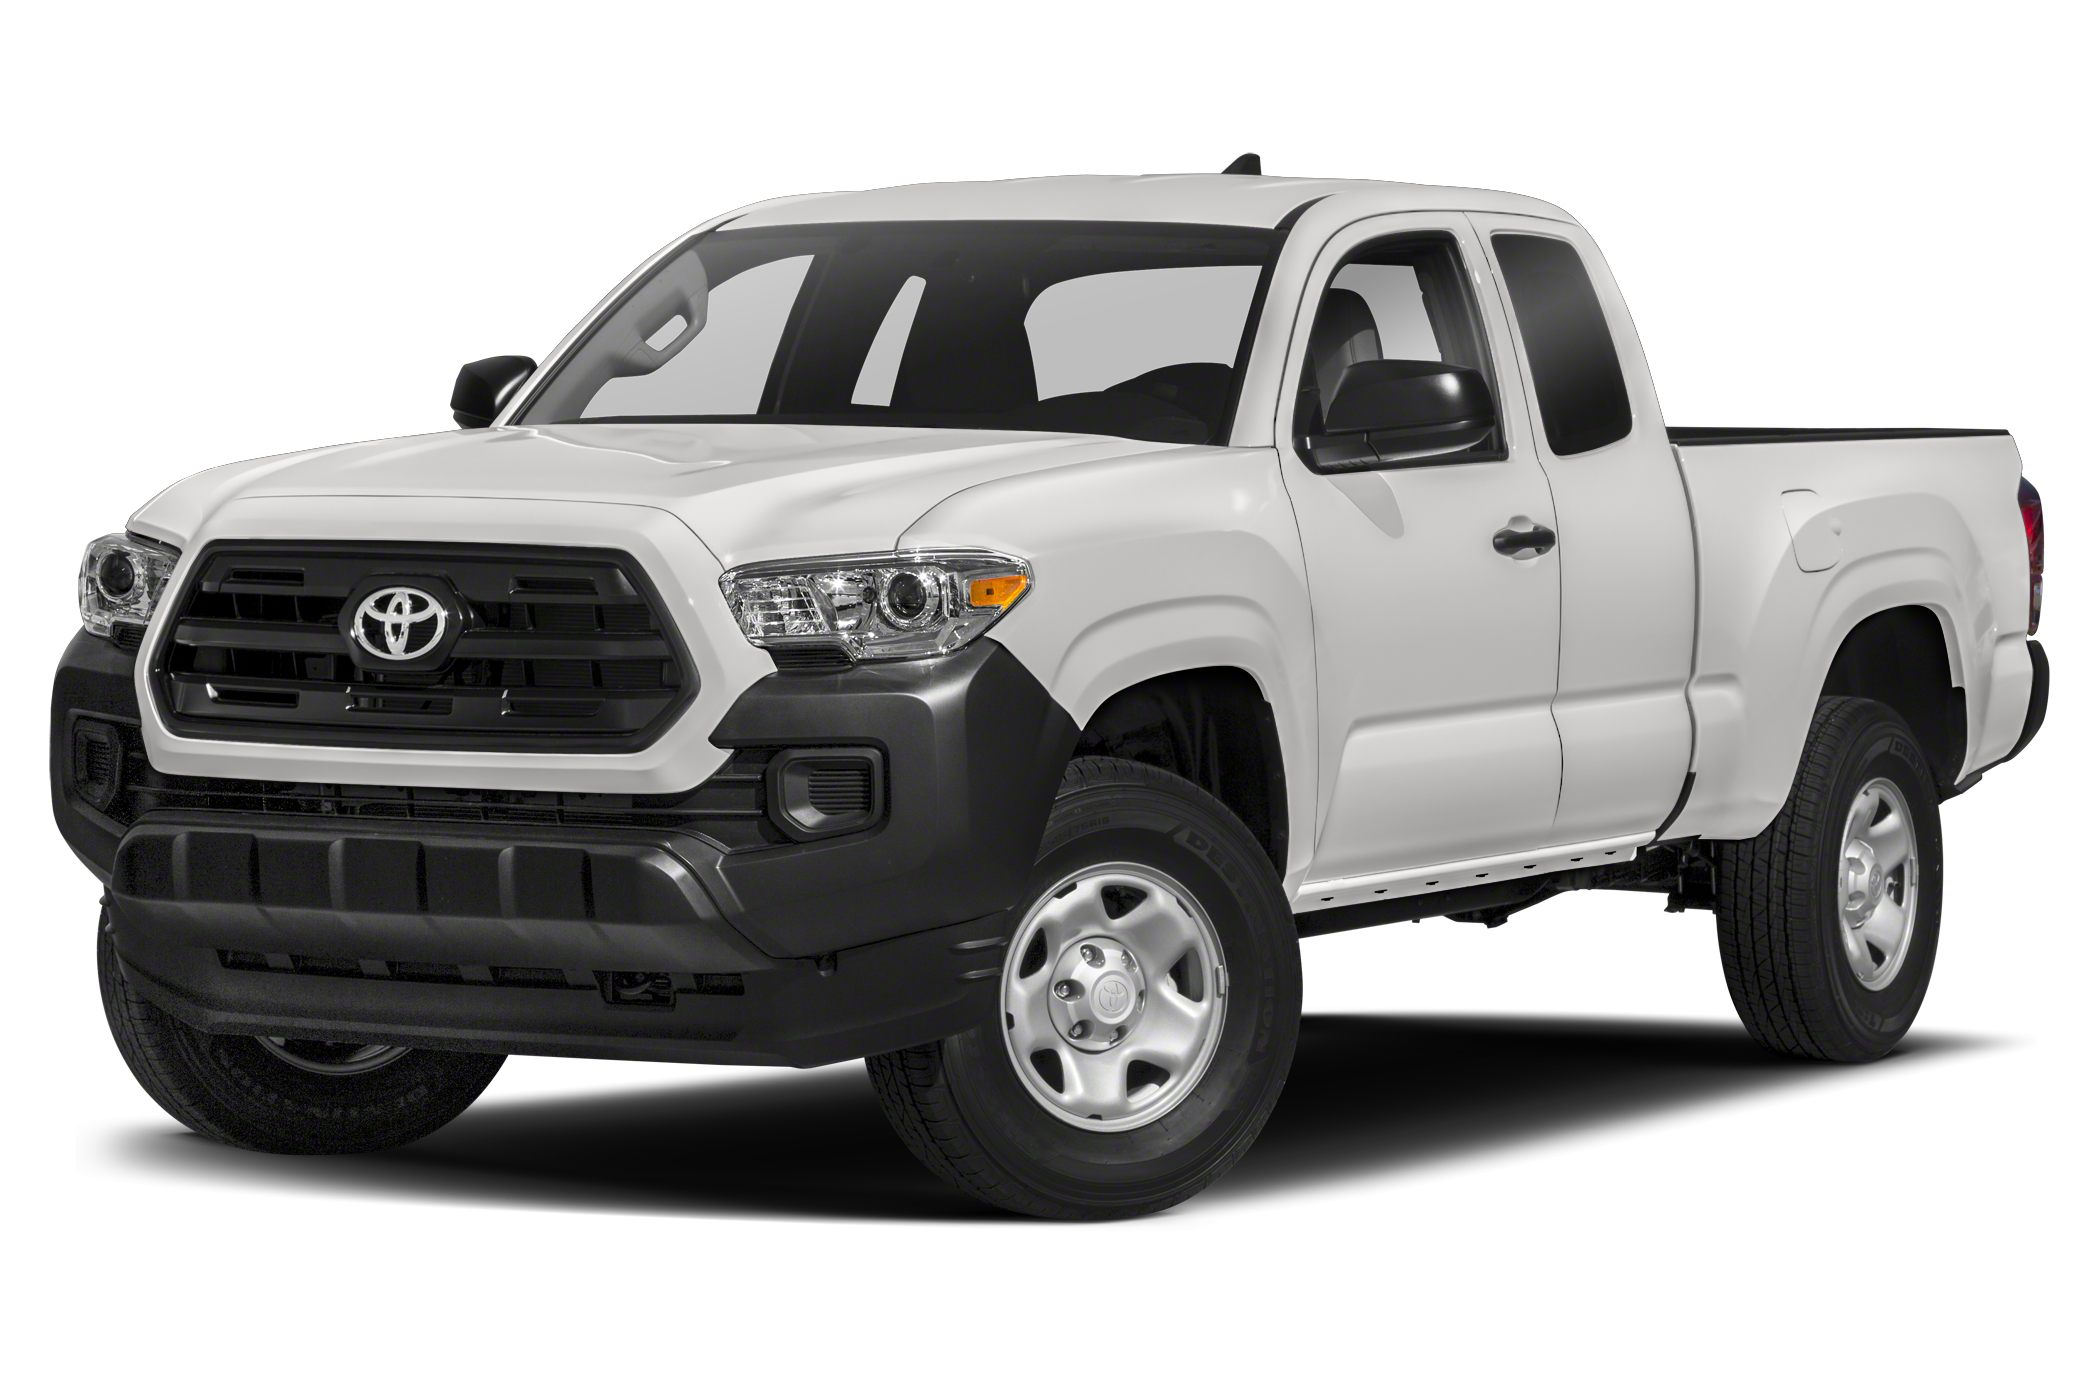 2017 Toyota Tacoma SR FUEL EFFICIENT 22 MPG Hwy19 MPG City SR trim 4x4 Back-Up Camera iPodMP